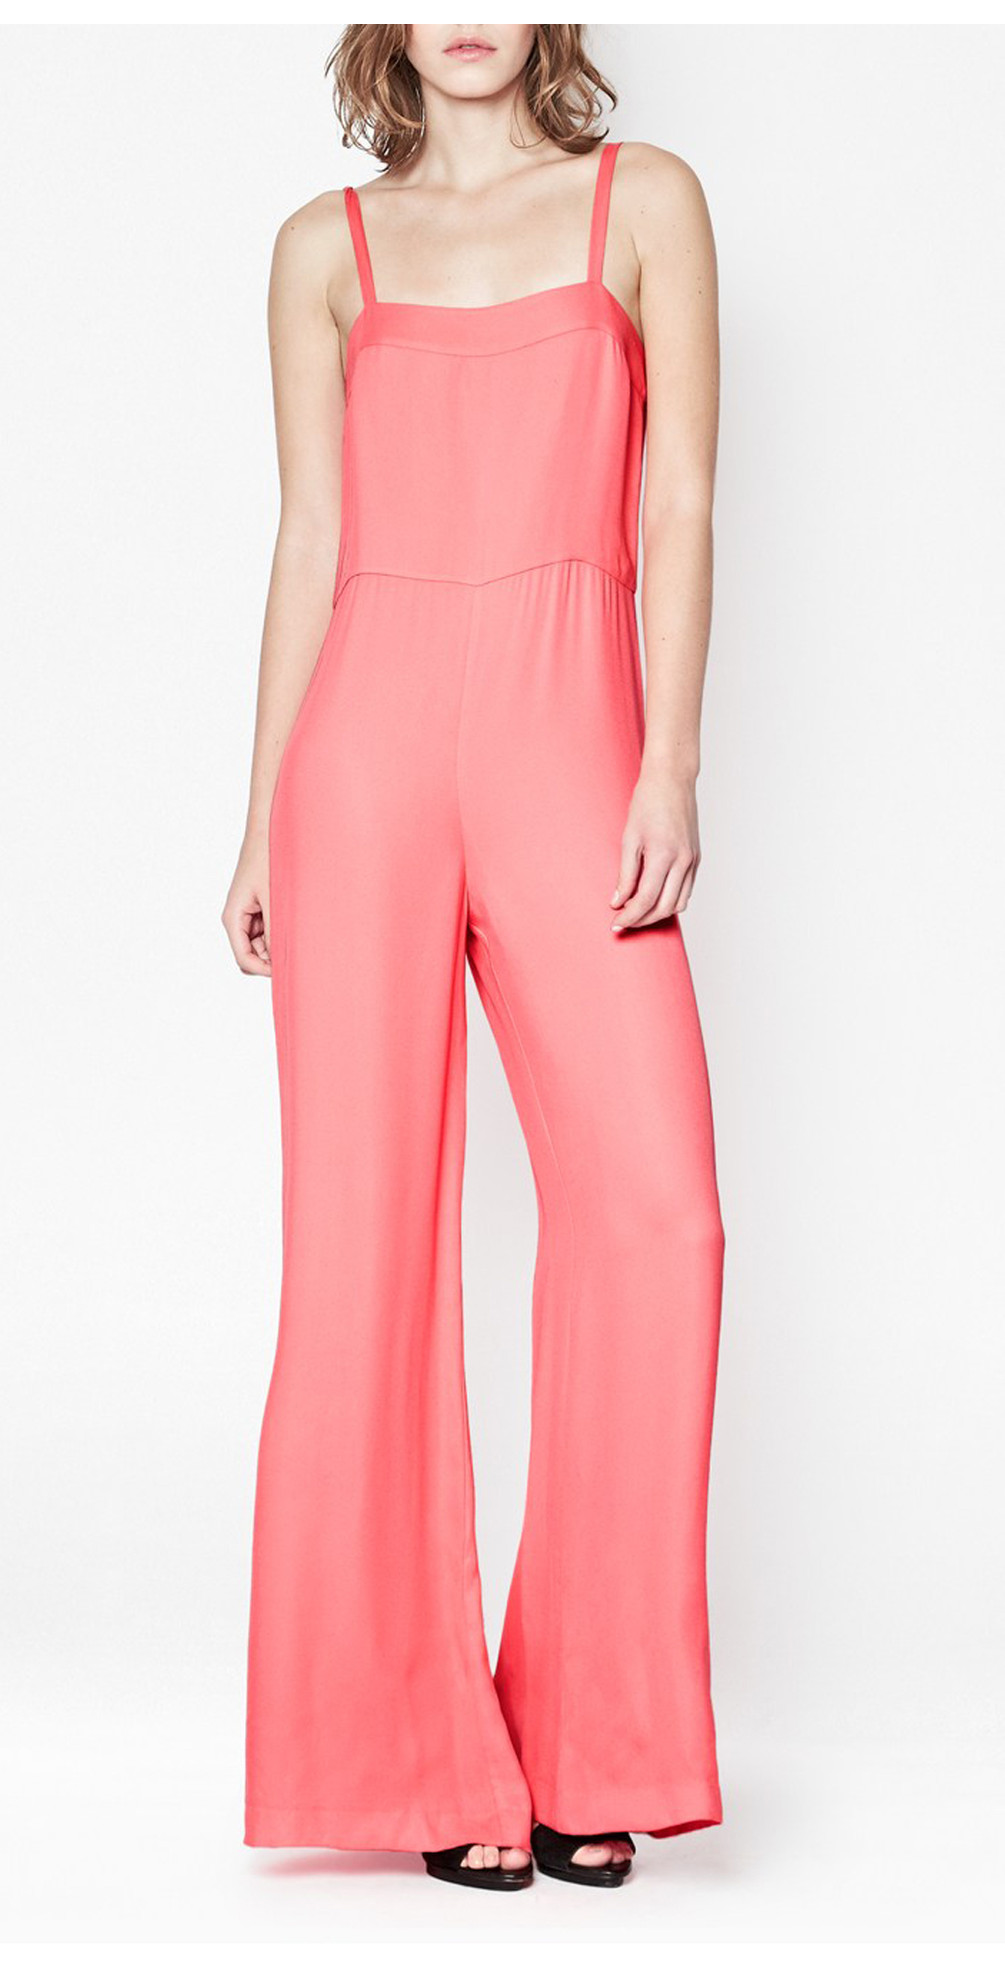 Calla Collette All in One Jumpsuit main image